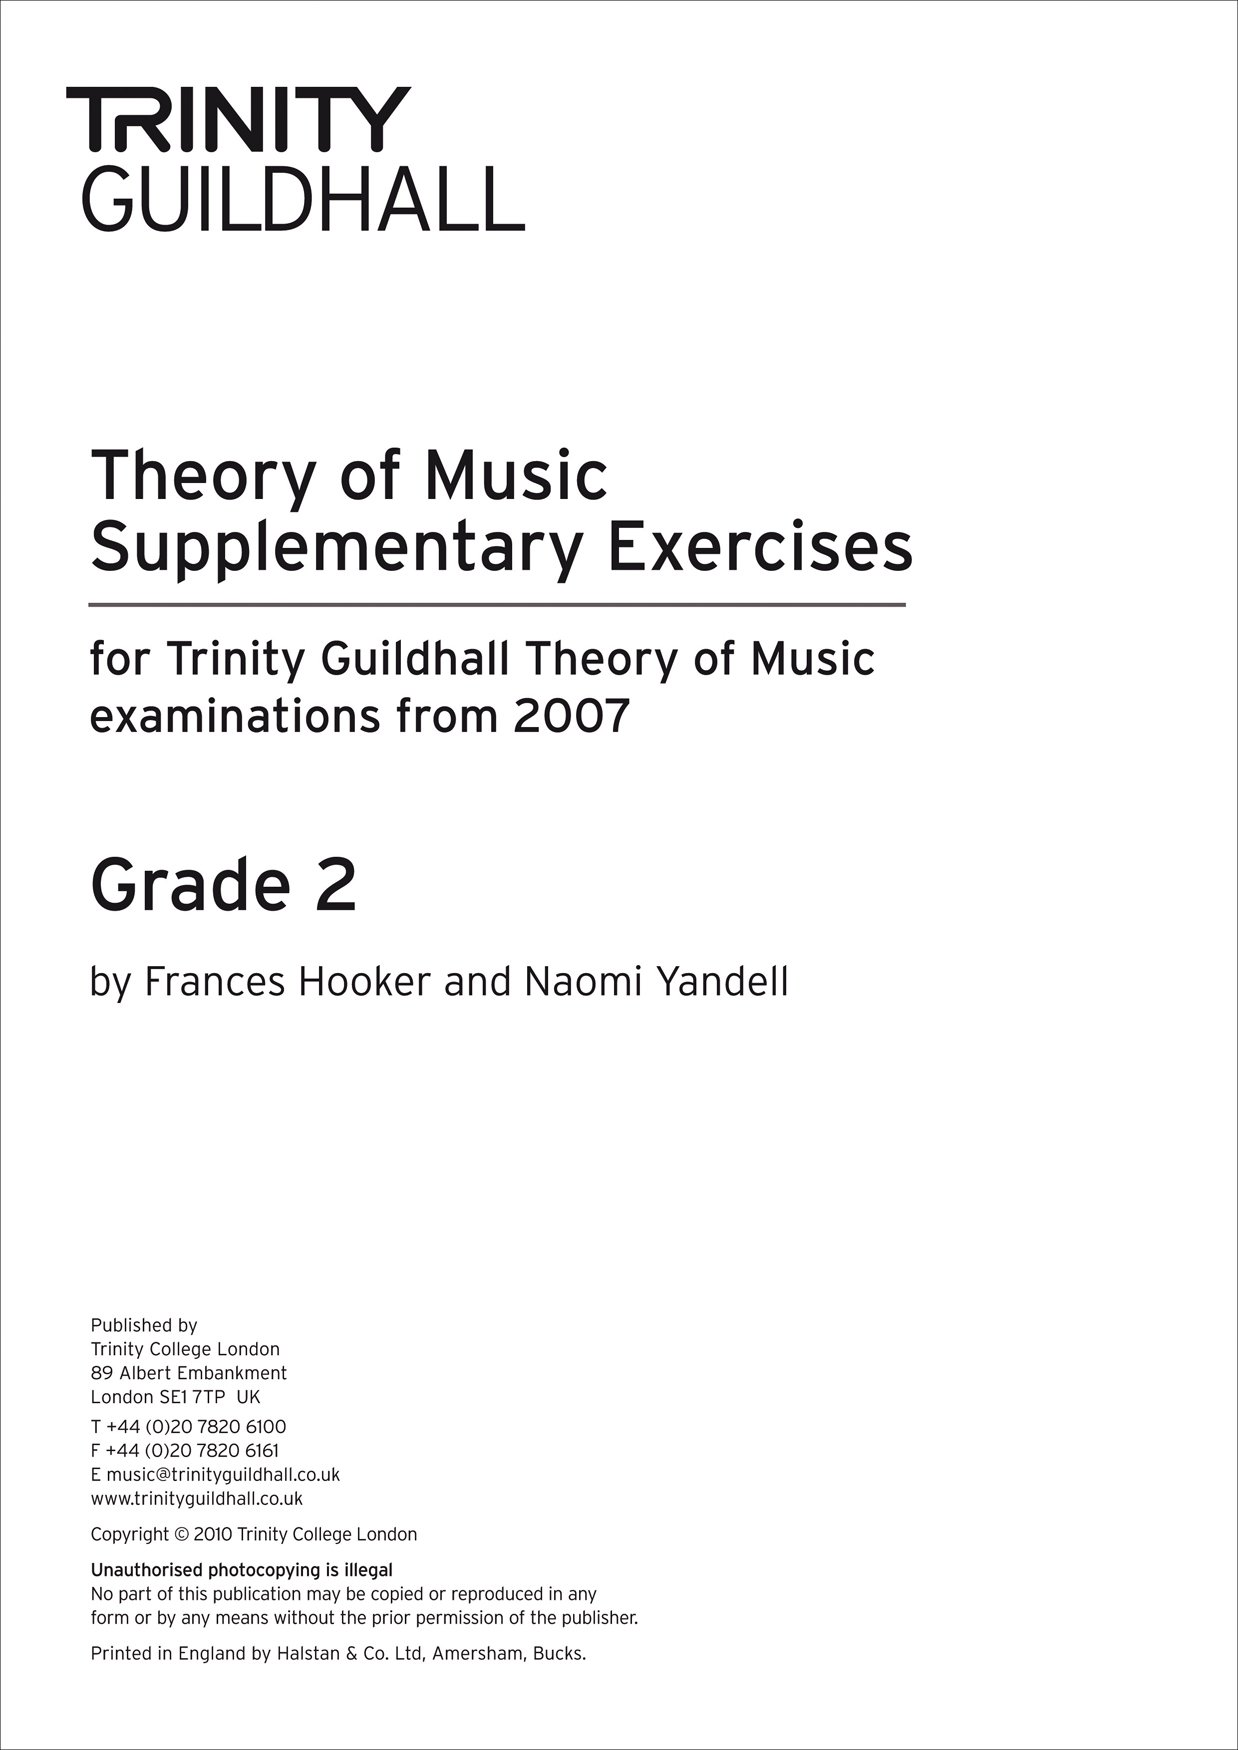 Theory of Music: Supplementary Practice Material Grade 2